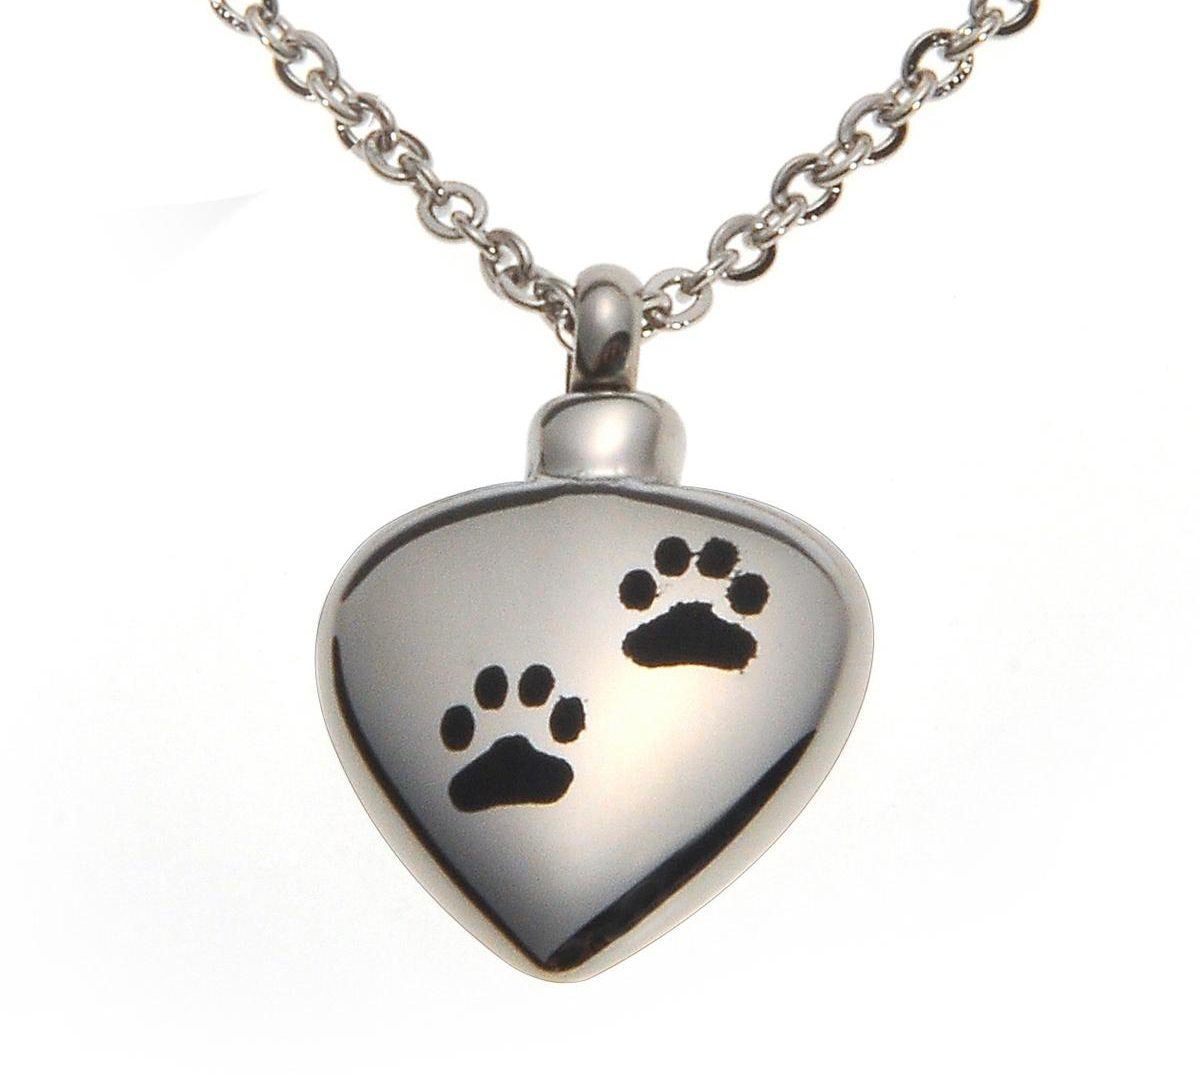 Ash clipart pet cremation. Necklaces necklace awesome uny